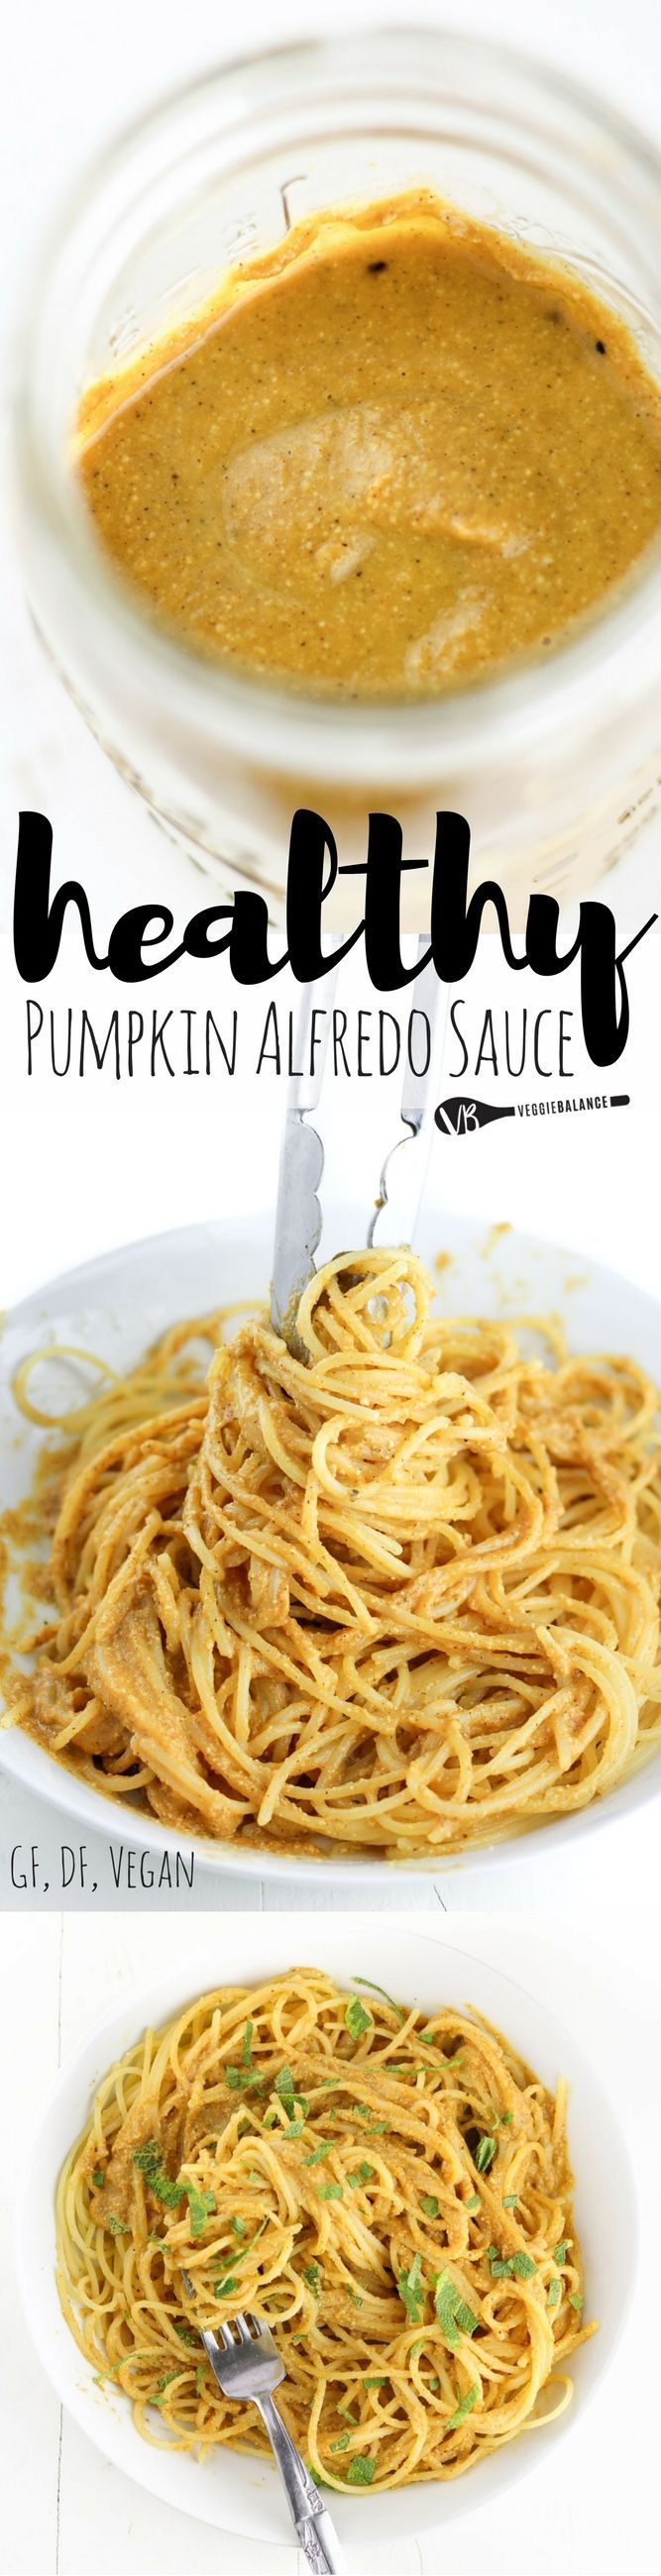 egan Pumpkin Alfredo Sauce recipe made with 9-Ingredients including fresh sage from the garden. Made in less than 20 minutes for 100% satisfaction of those pumpkin cravings! #FamilyPastaTime /barillaus/ #ad